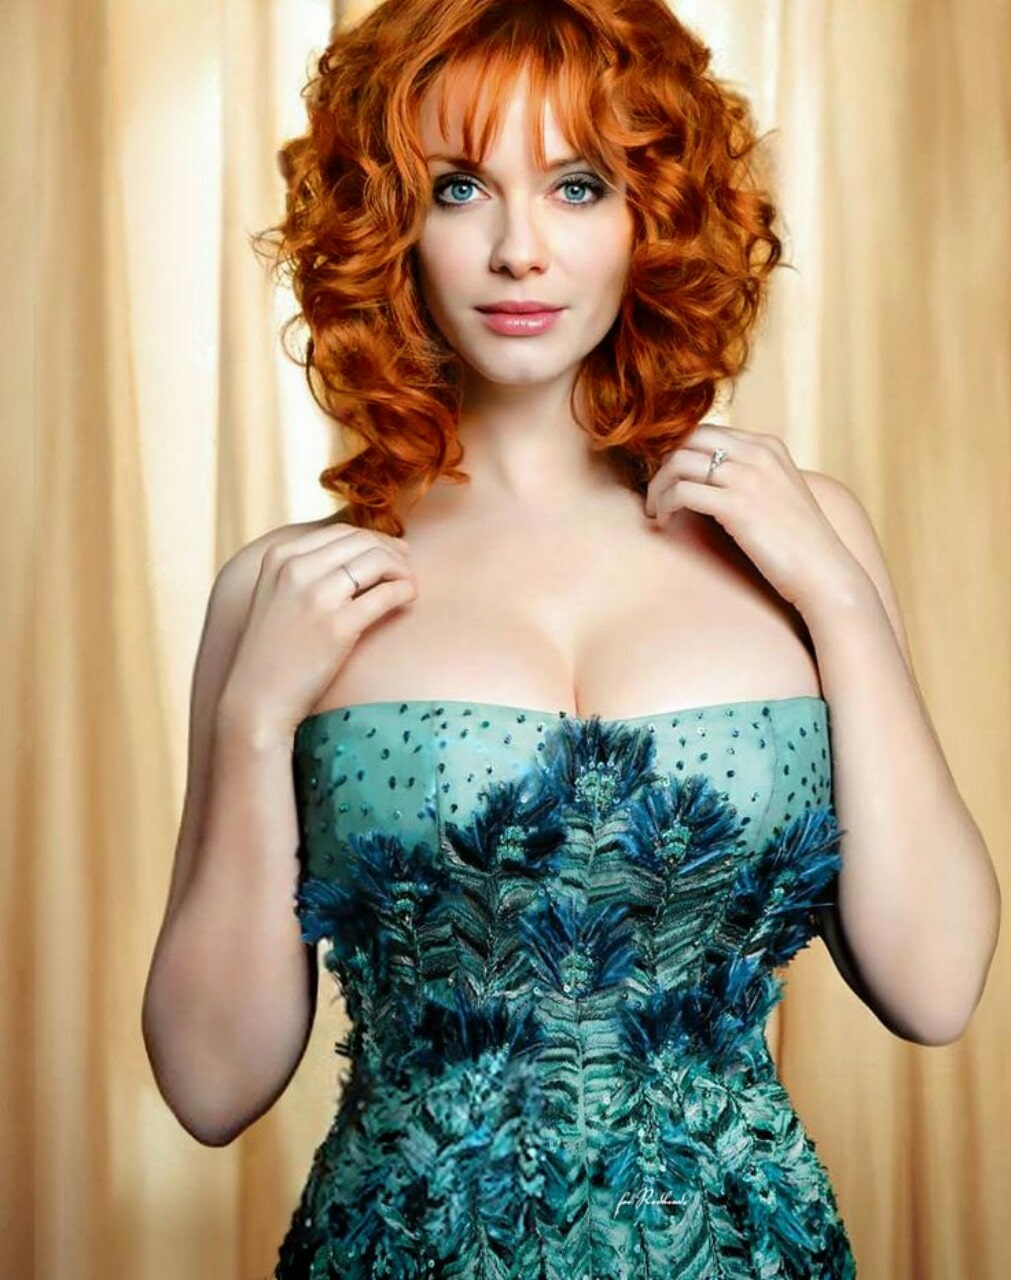 43 Hottest Christina Hendricks Big Butt Pictures Will Make You Want Her Now-6194